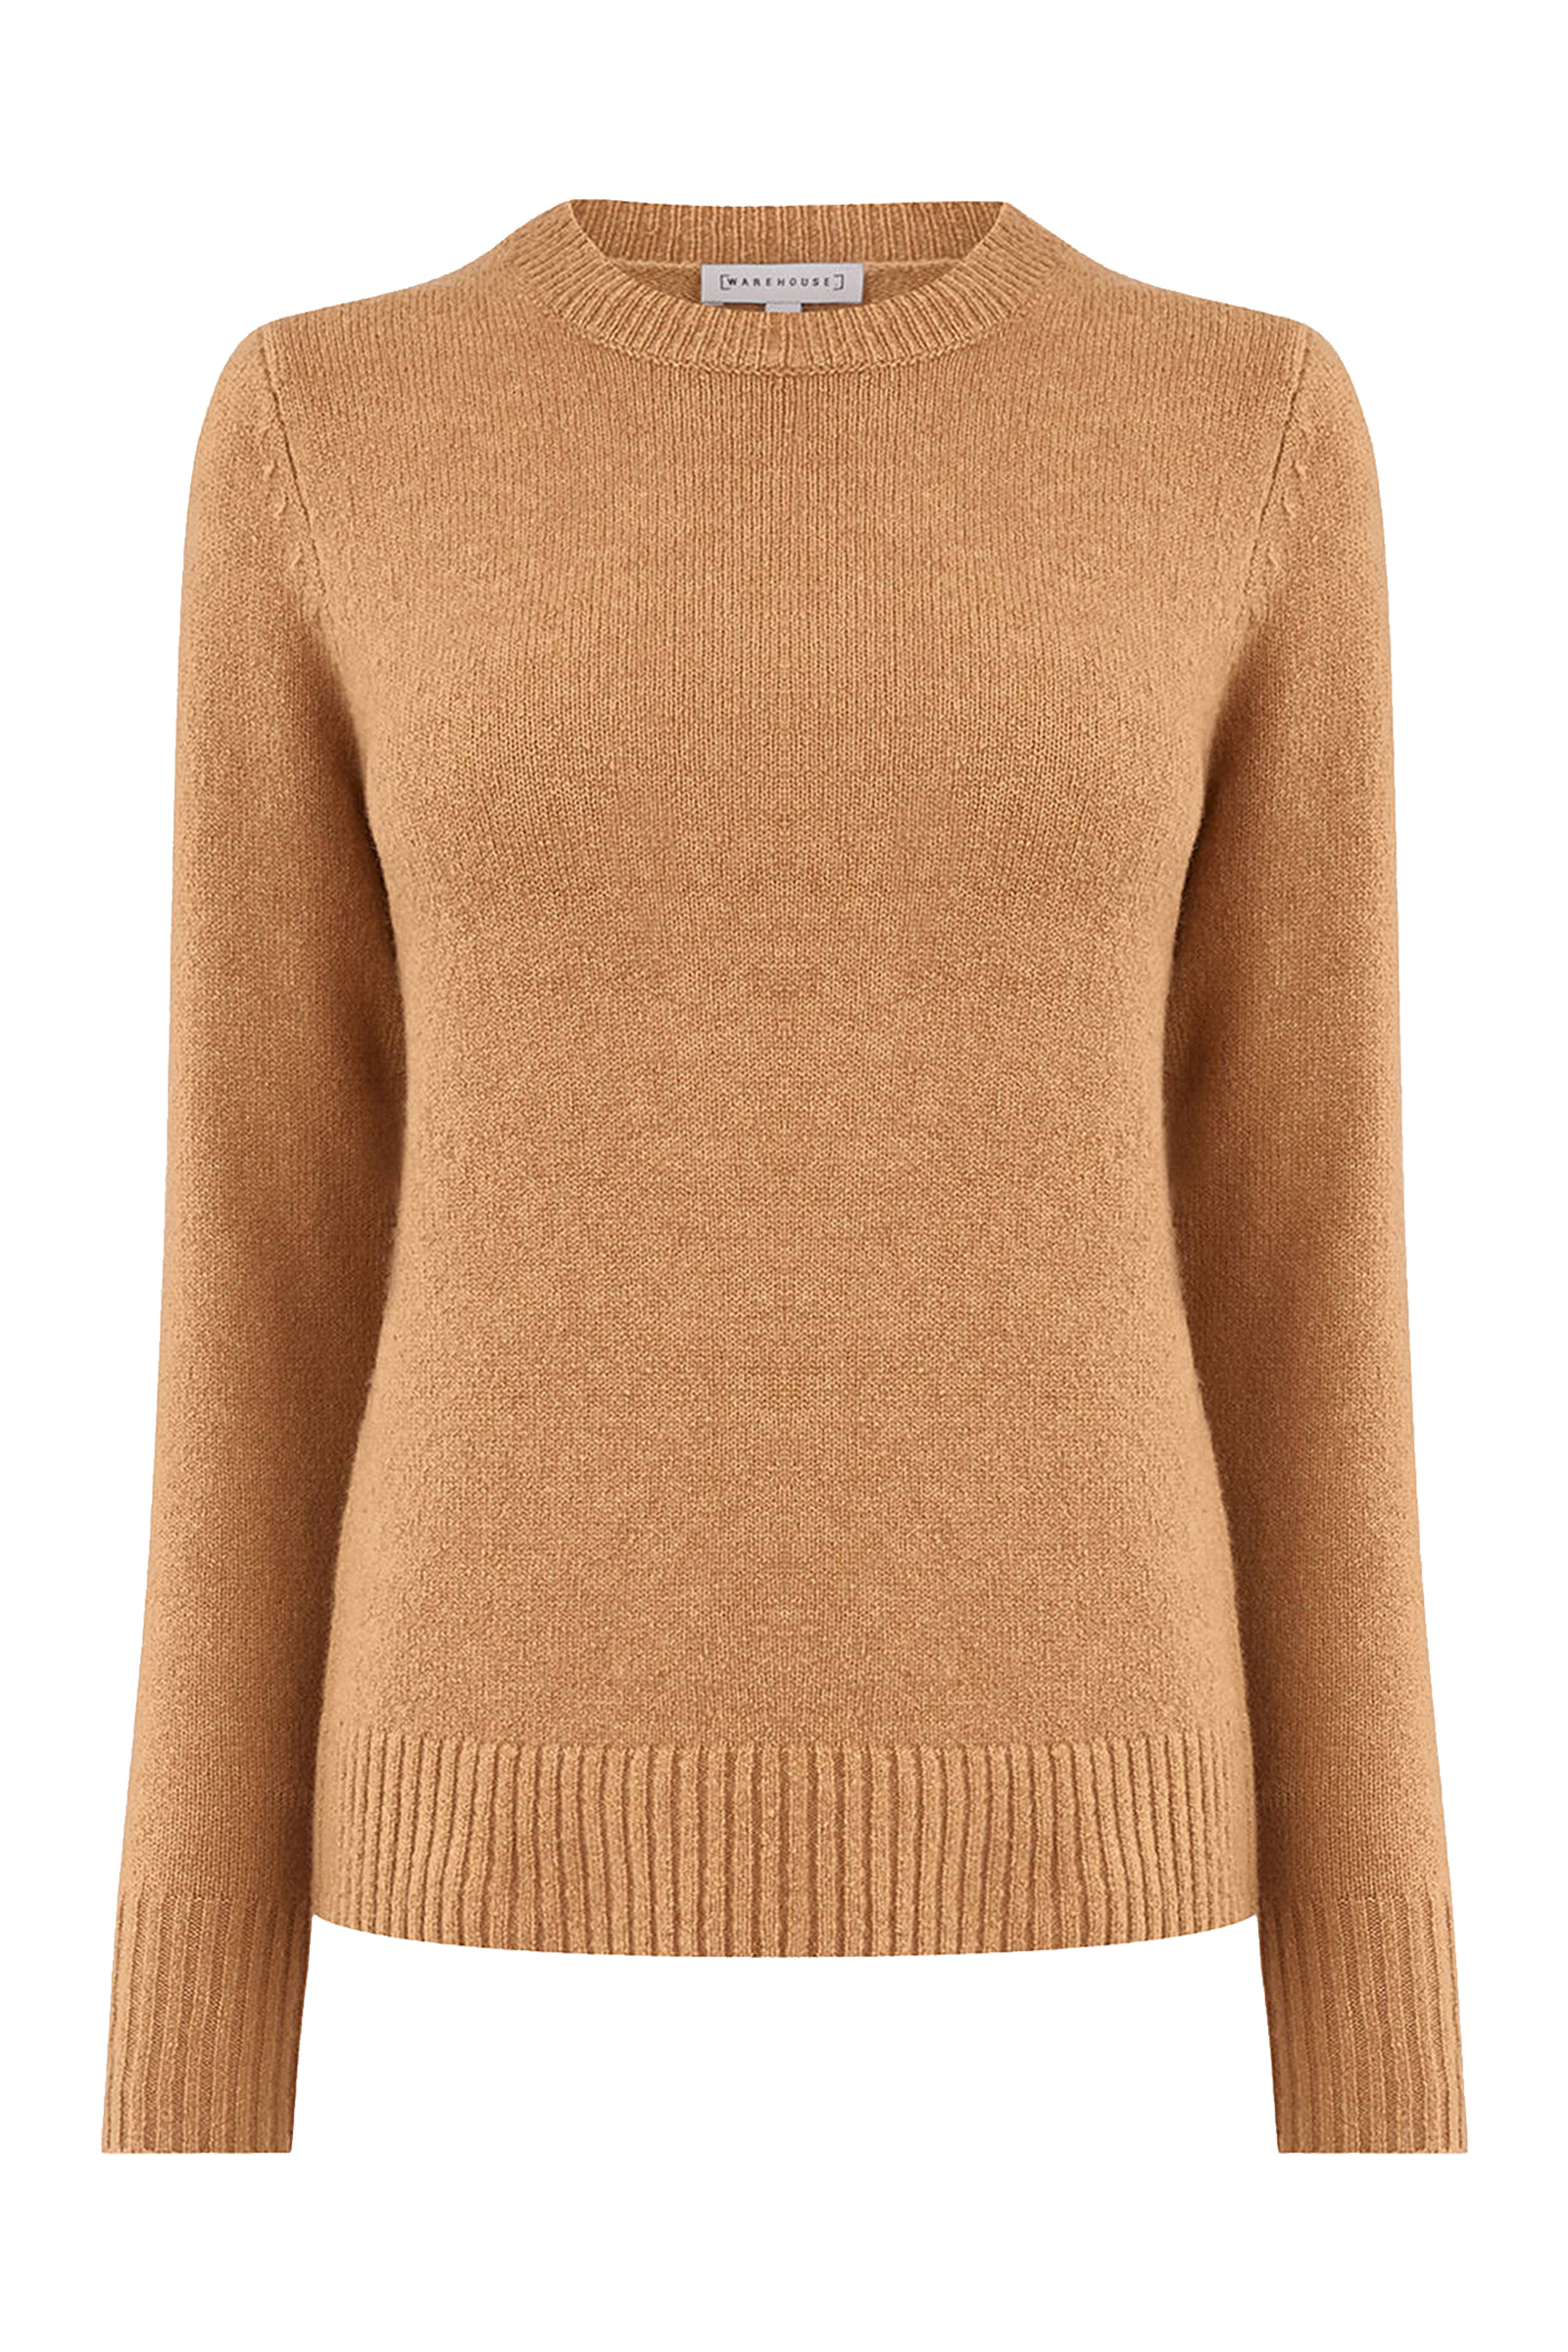 Click to Buy Warehouse Jumper